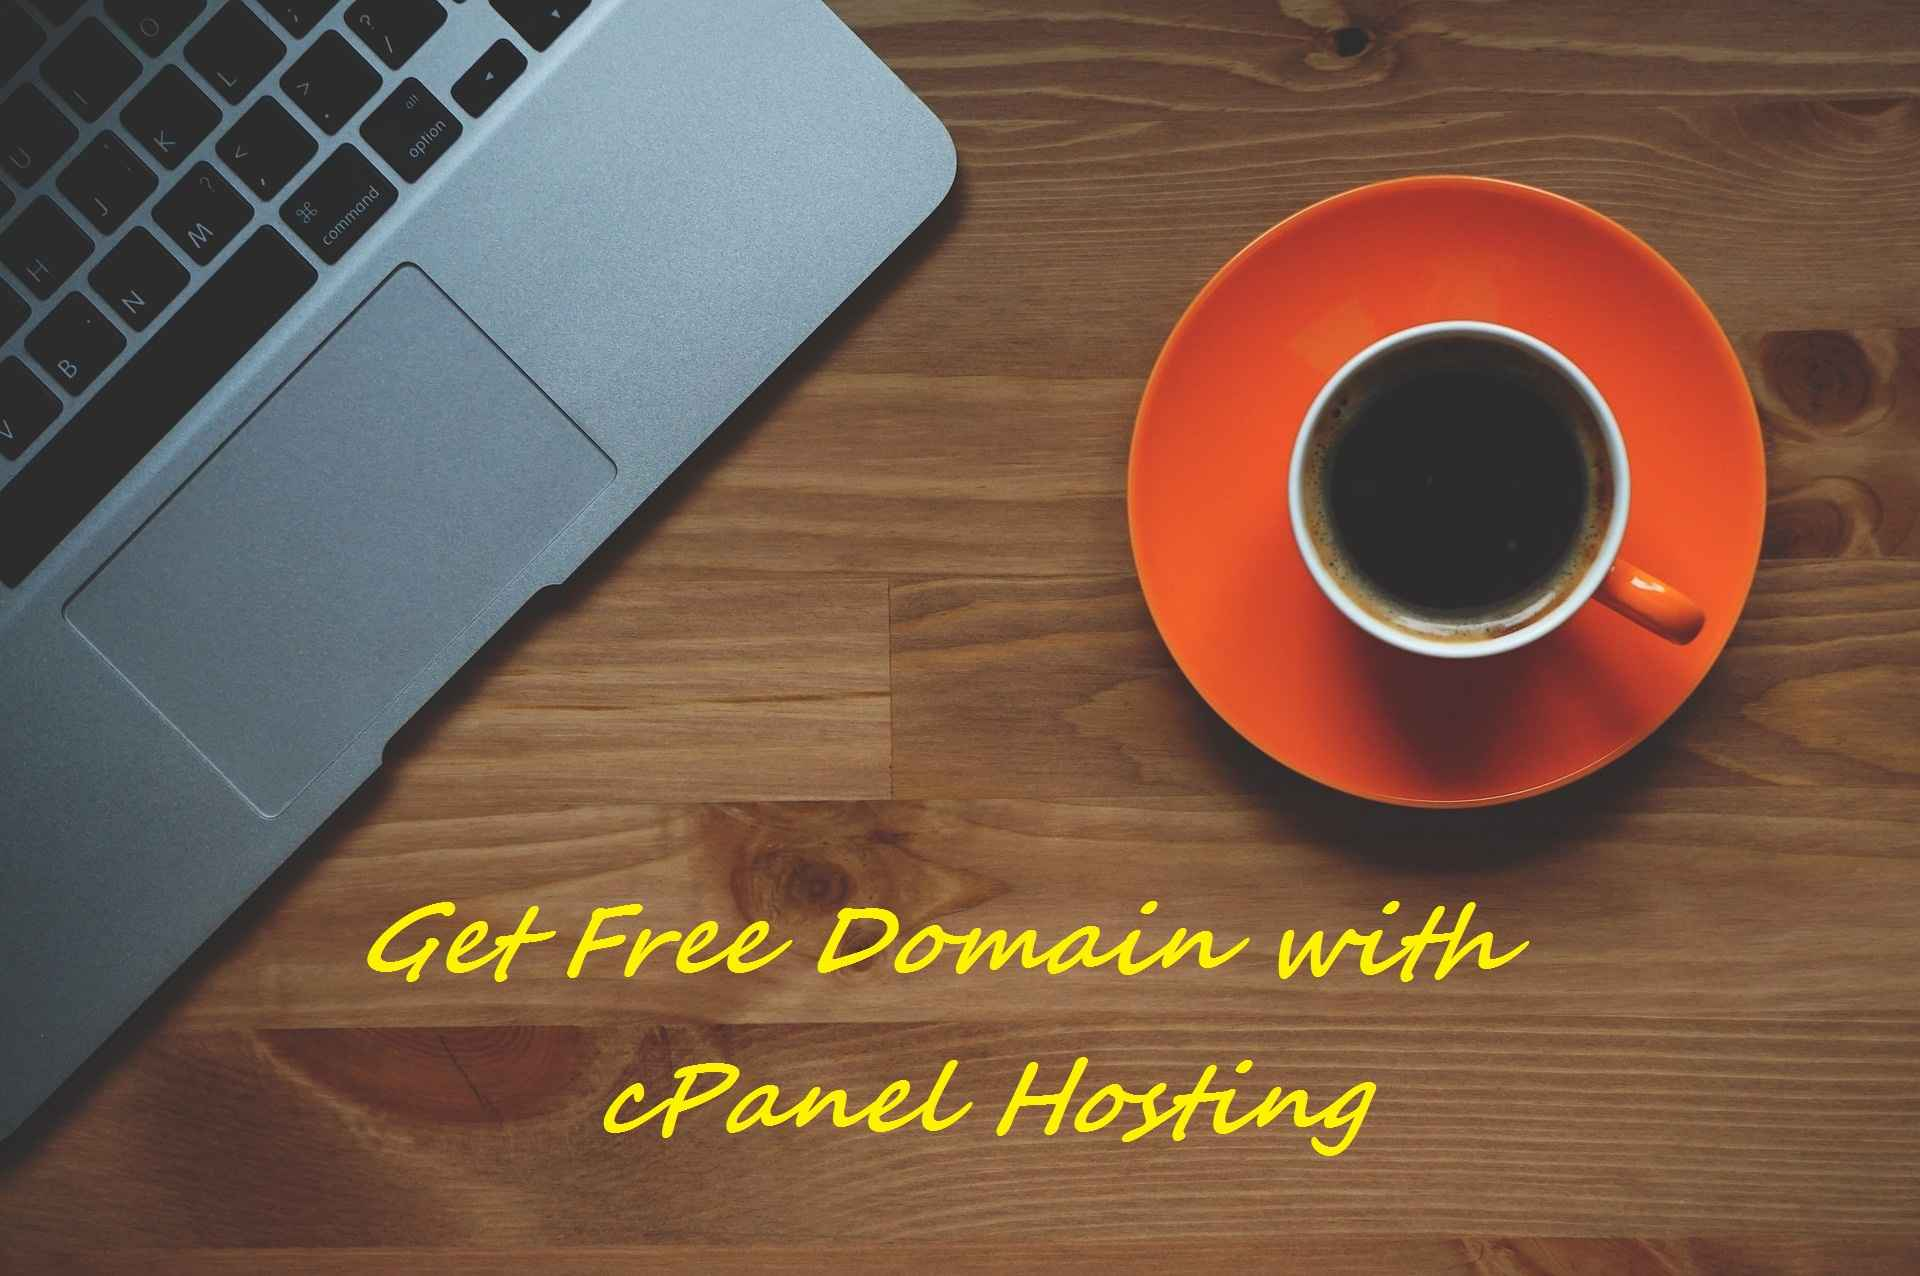 Giveaway : Get Free .in Domain + cPanel Hosting For 1 Year